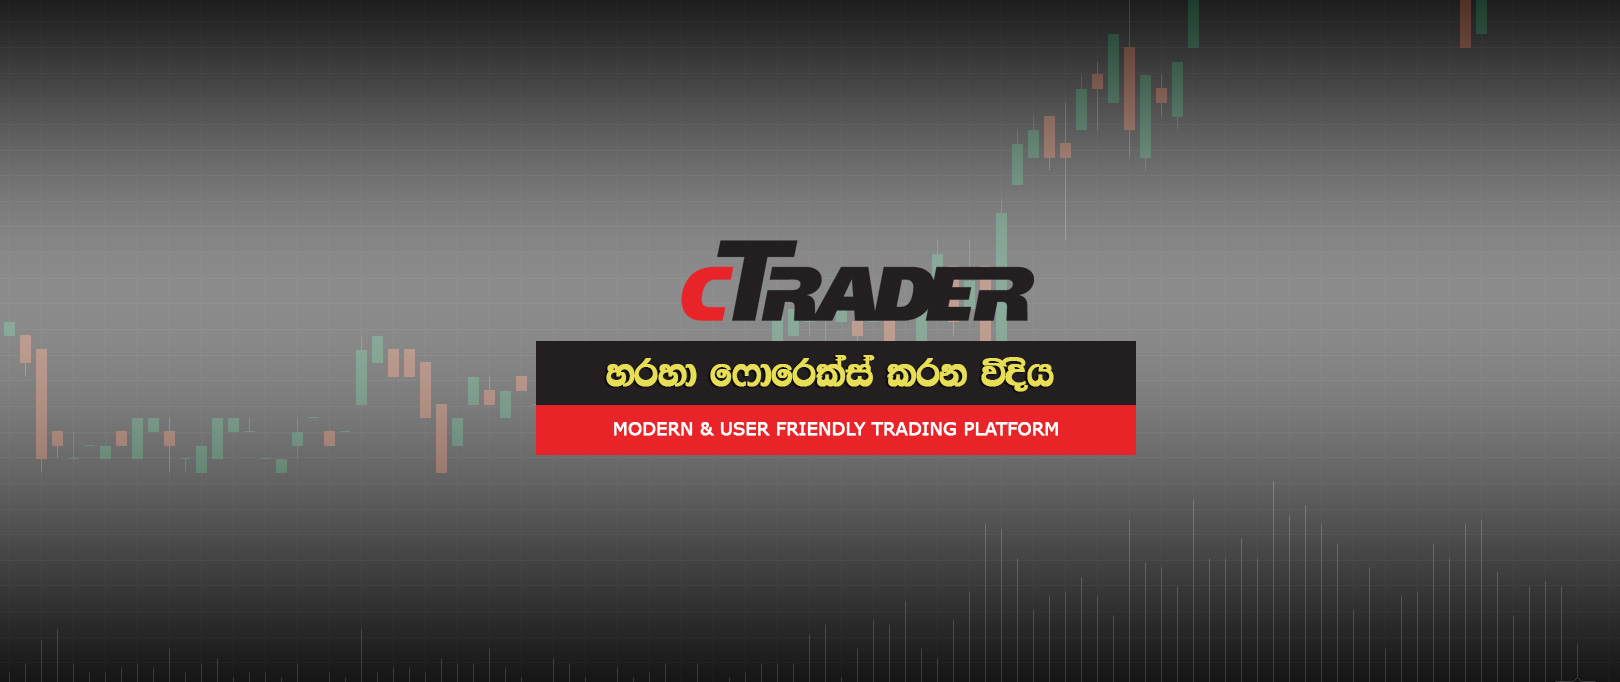 ctrader-Tutorial-in-Sinhala-by-Prathilaba-Sri-Lanka